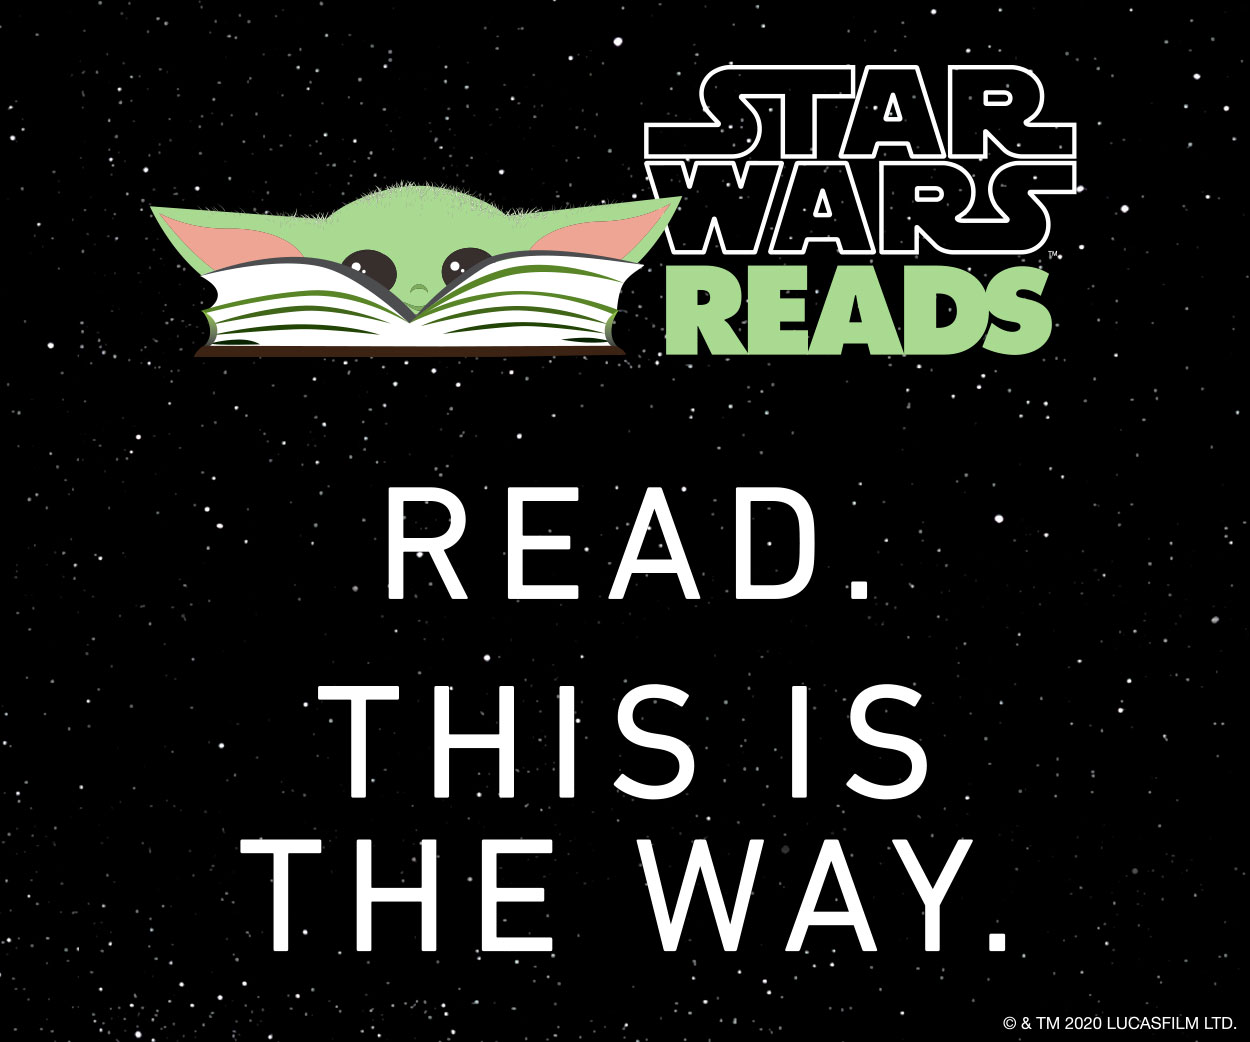 Star Wars Read Banner Ad